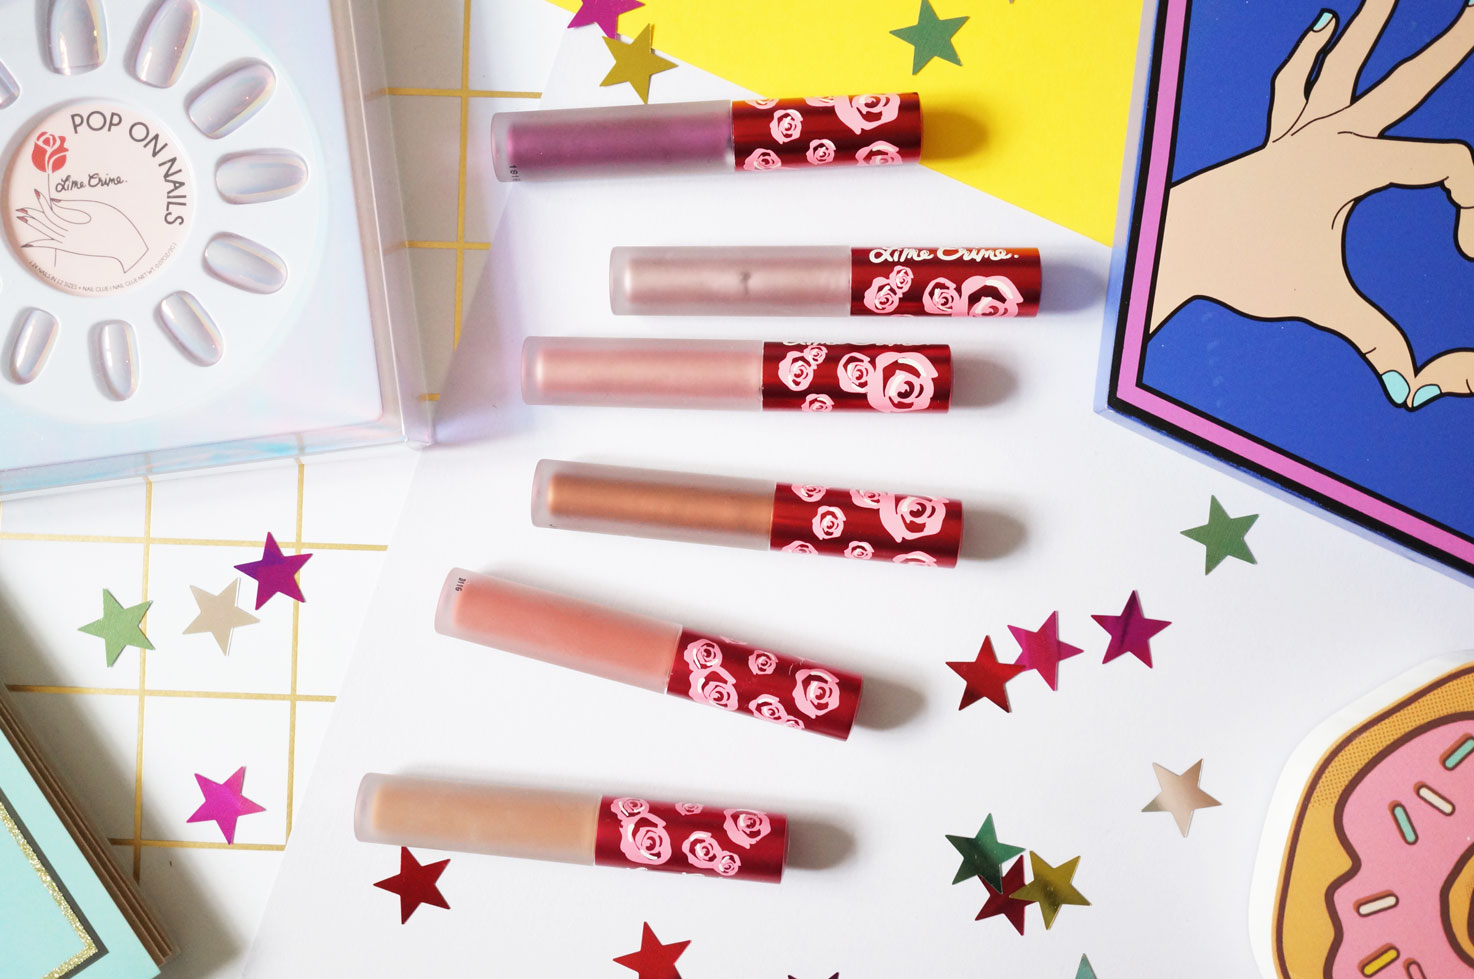 Beauty My Picks From Lime Crime At Asos Thou Shalt Not Covet Velvetines All Shade Another Of Crimes Newer Launches Is Their Metallic Liquid Lipsticks 1500 There Are Six Shades To Choose